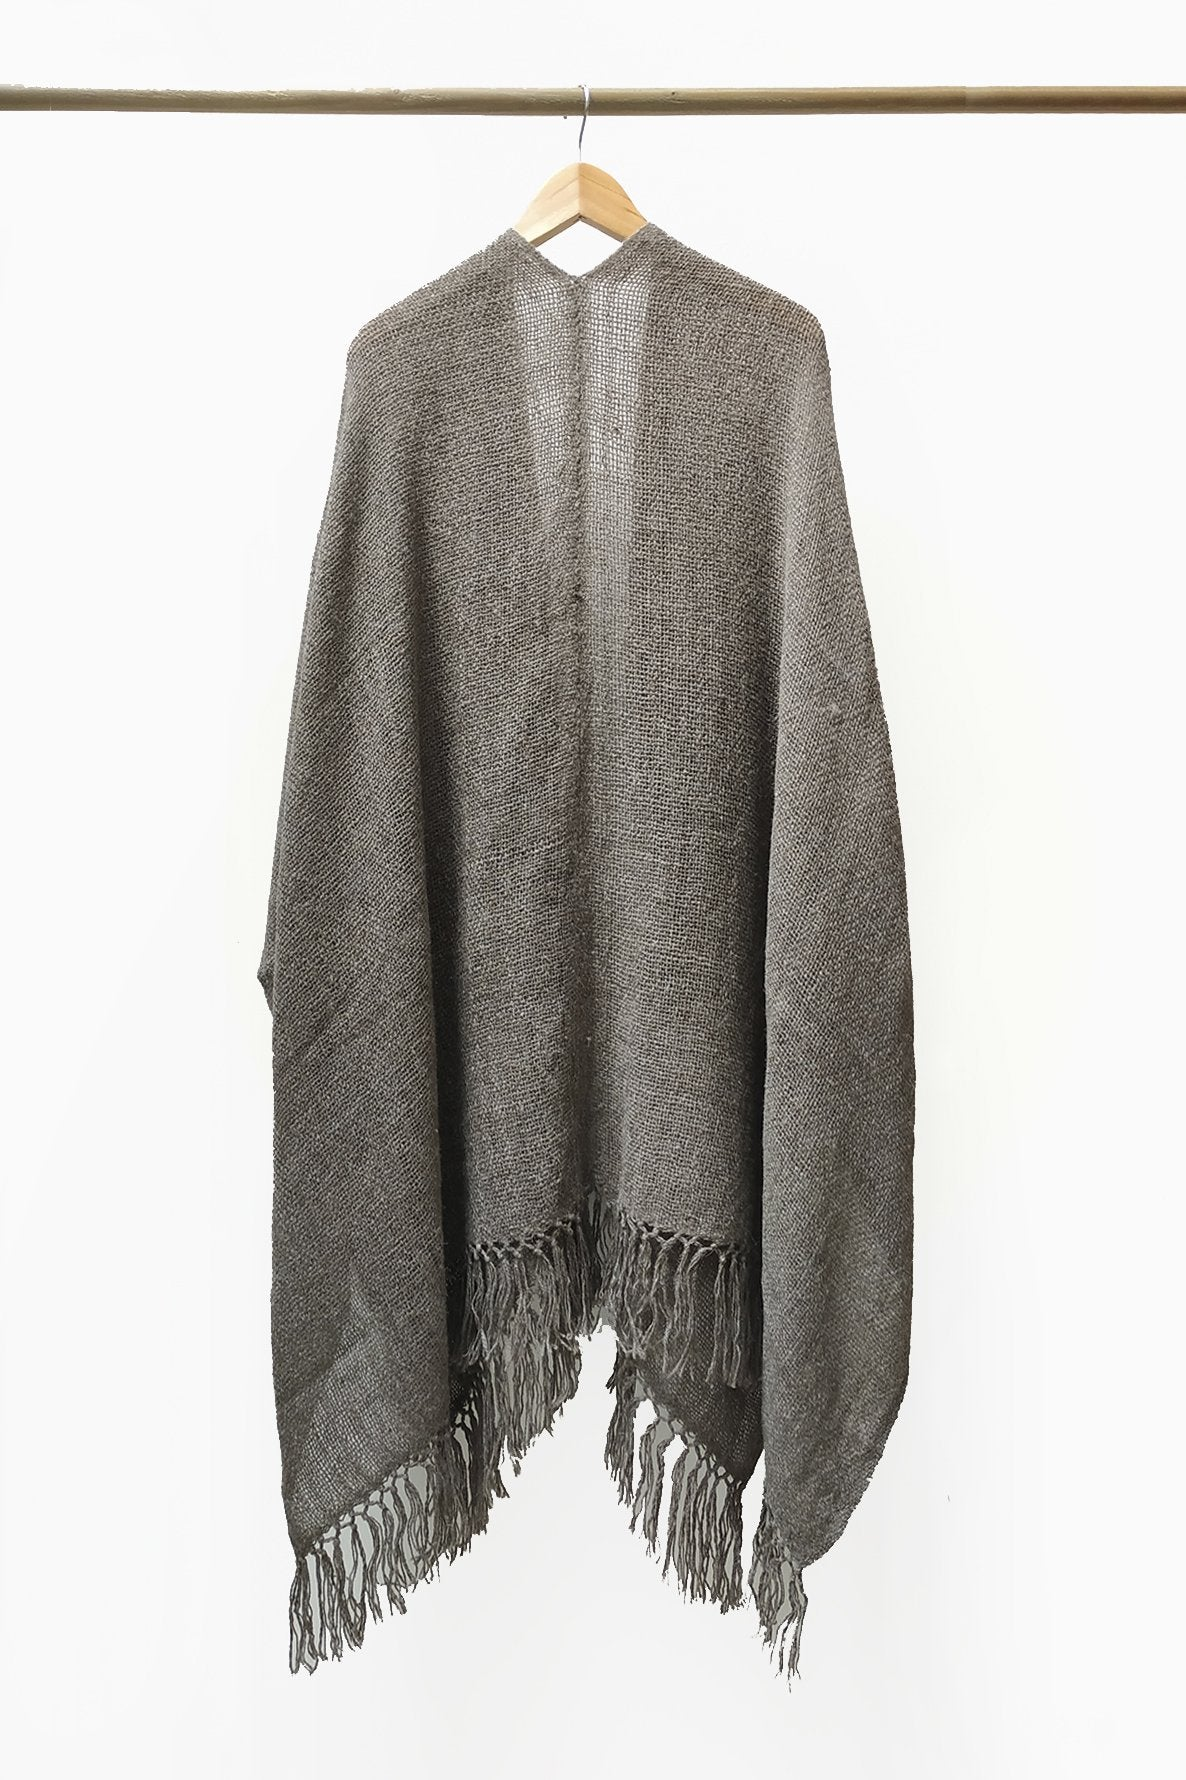 Back of Gray Mink Llama Handwoven Poncho.